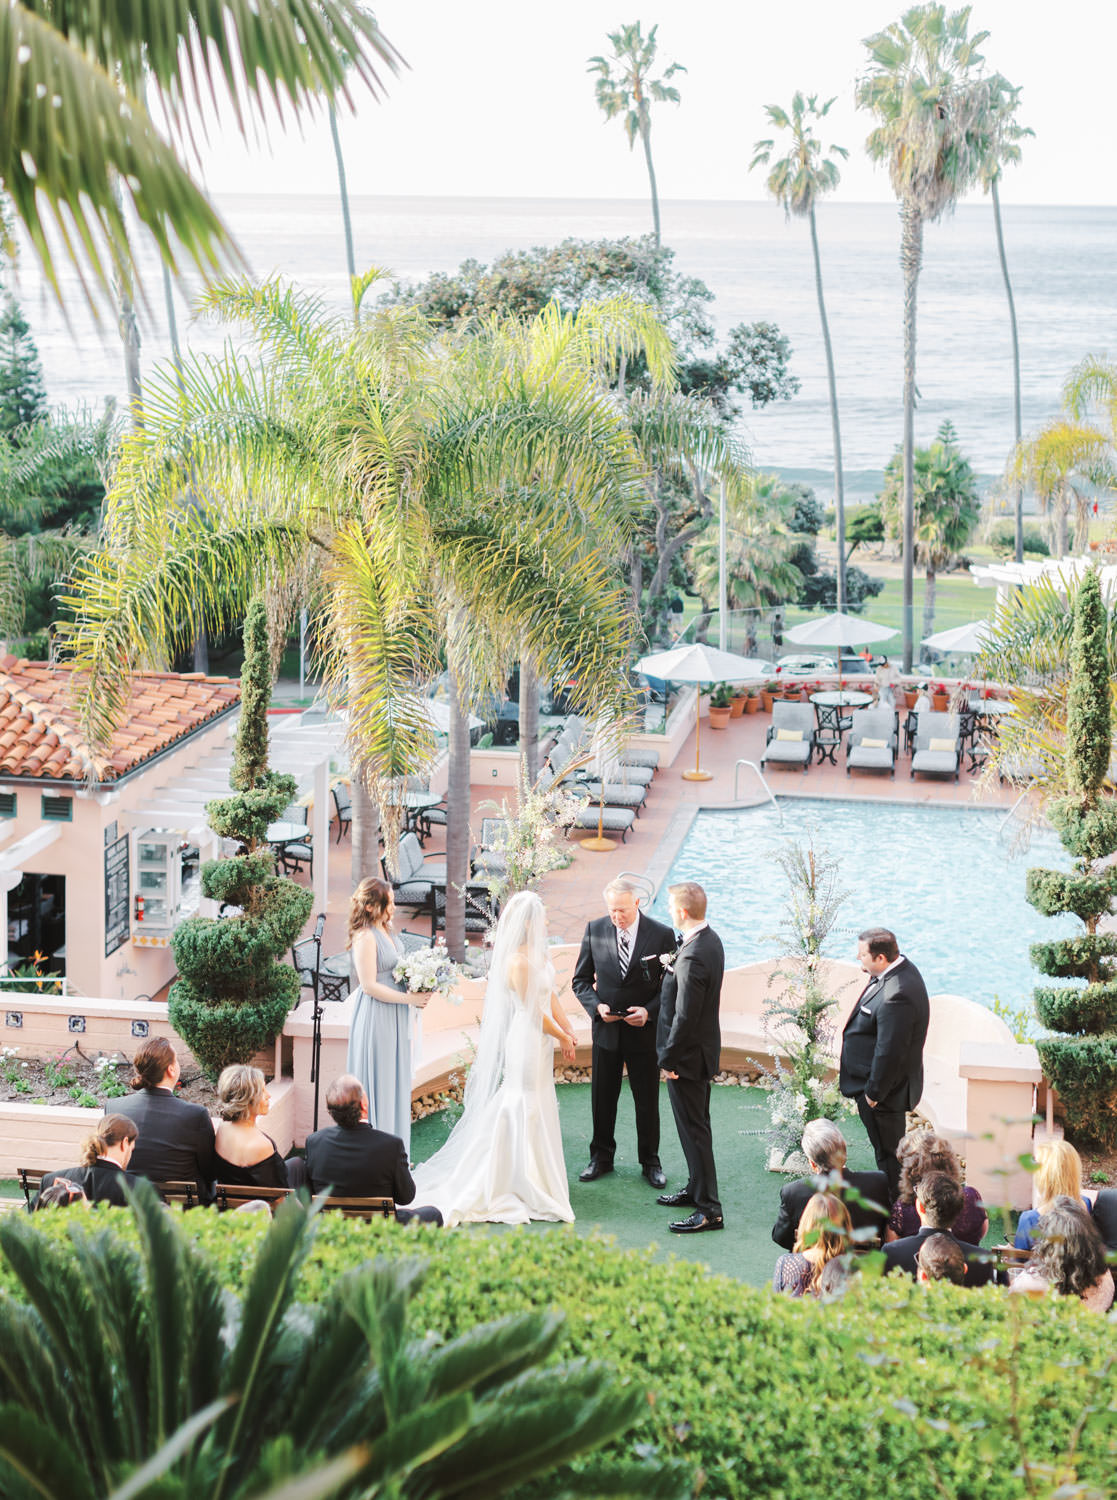 Breaktaking ocean and palm tree views overlooking a pool and surrounded by green hedges for a stunning wedding ceremony, Intimate Wedding at La Valencia Hotel in La Jolla by Cavin Elizabeth Photography